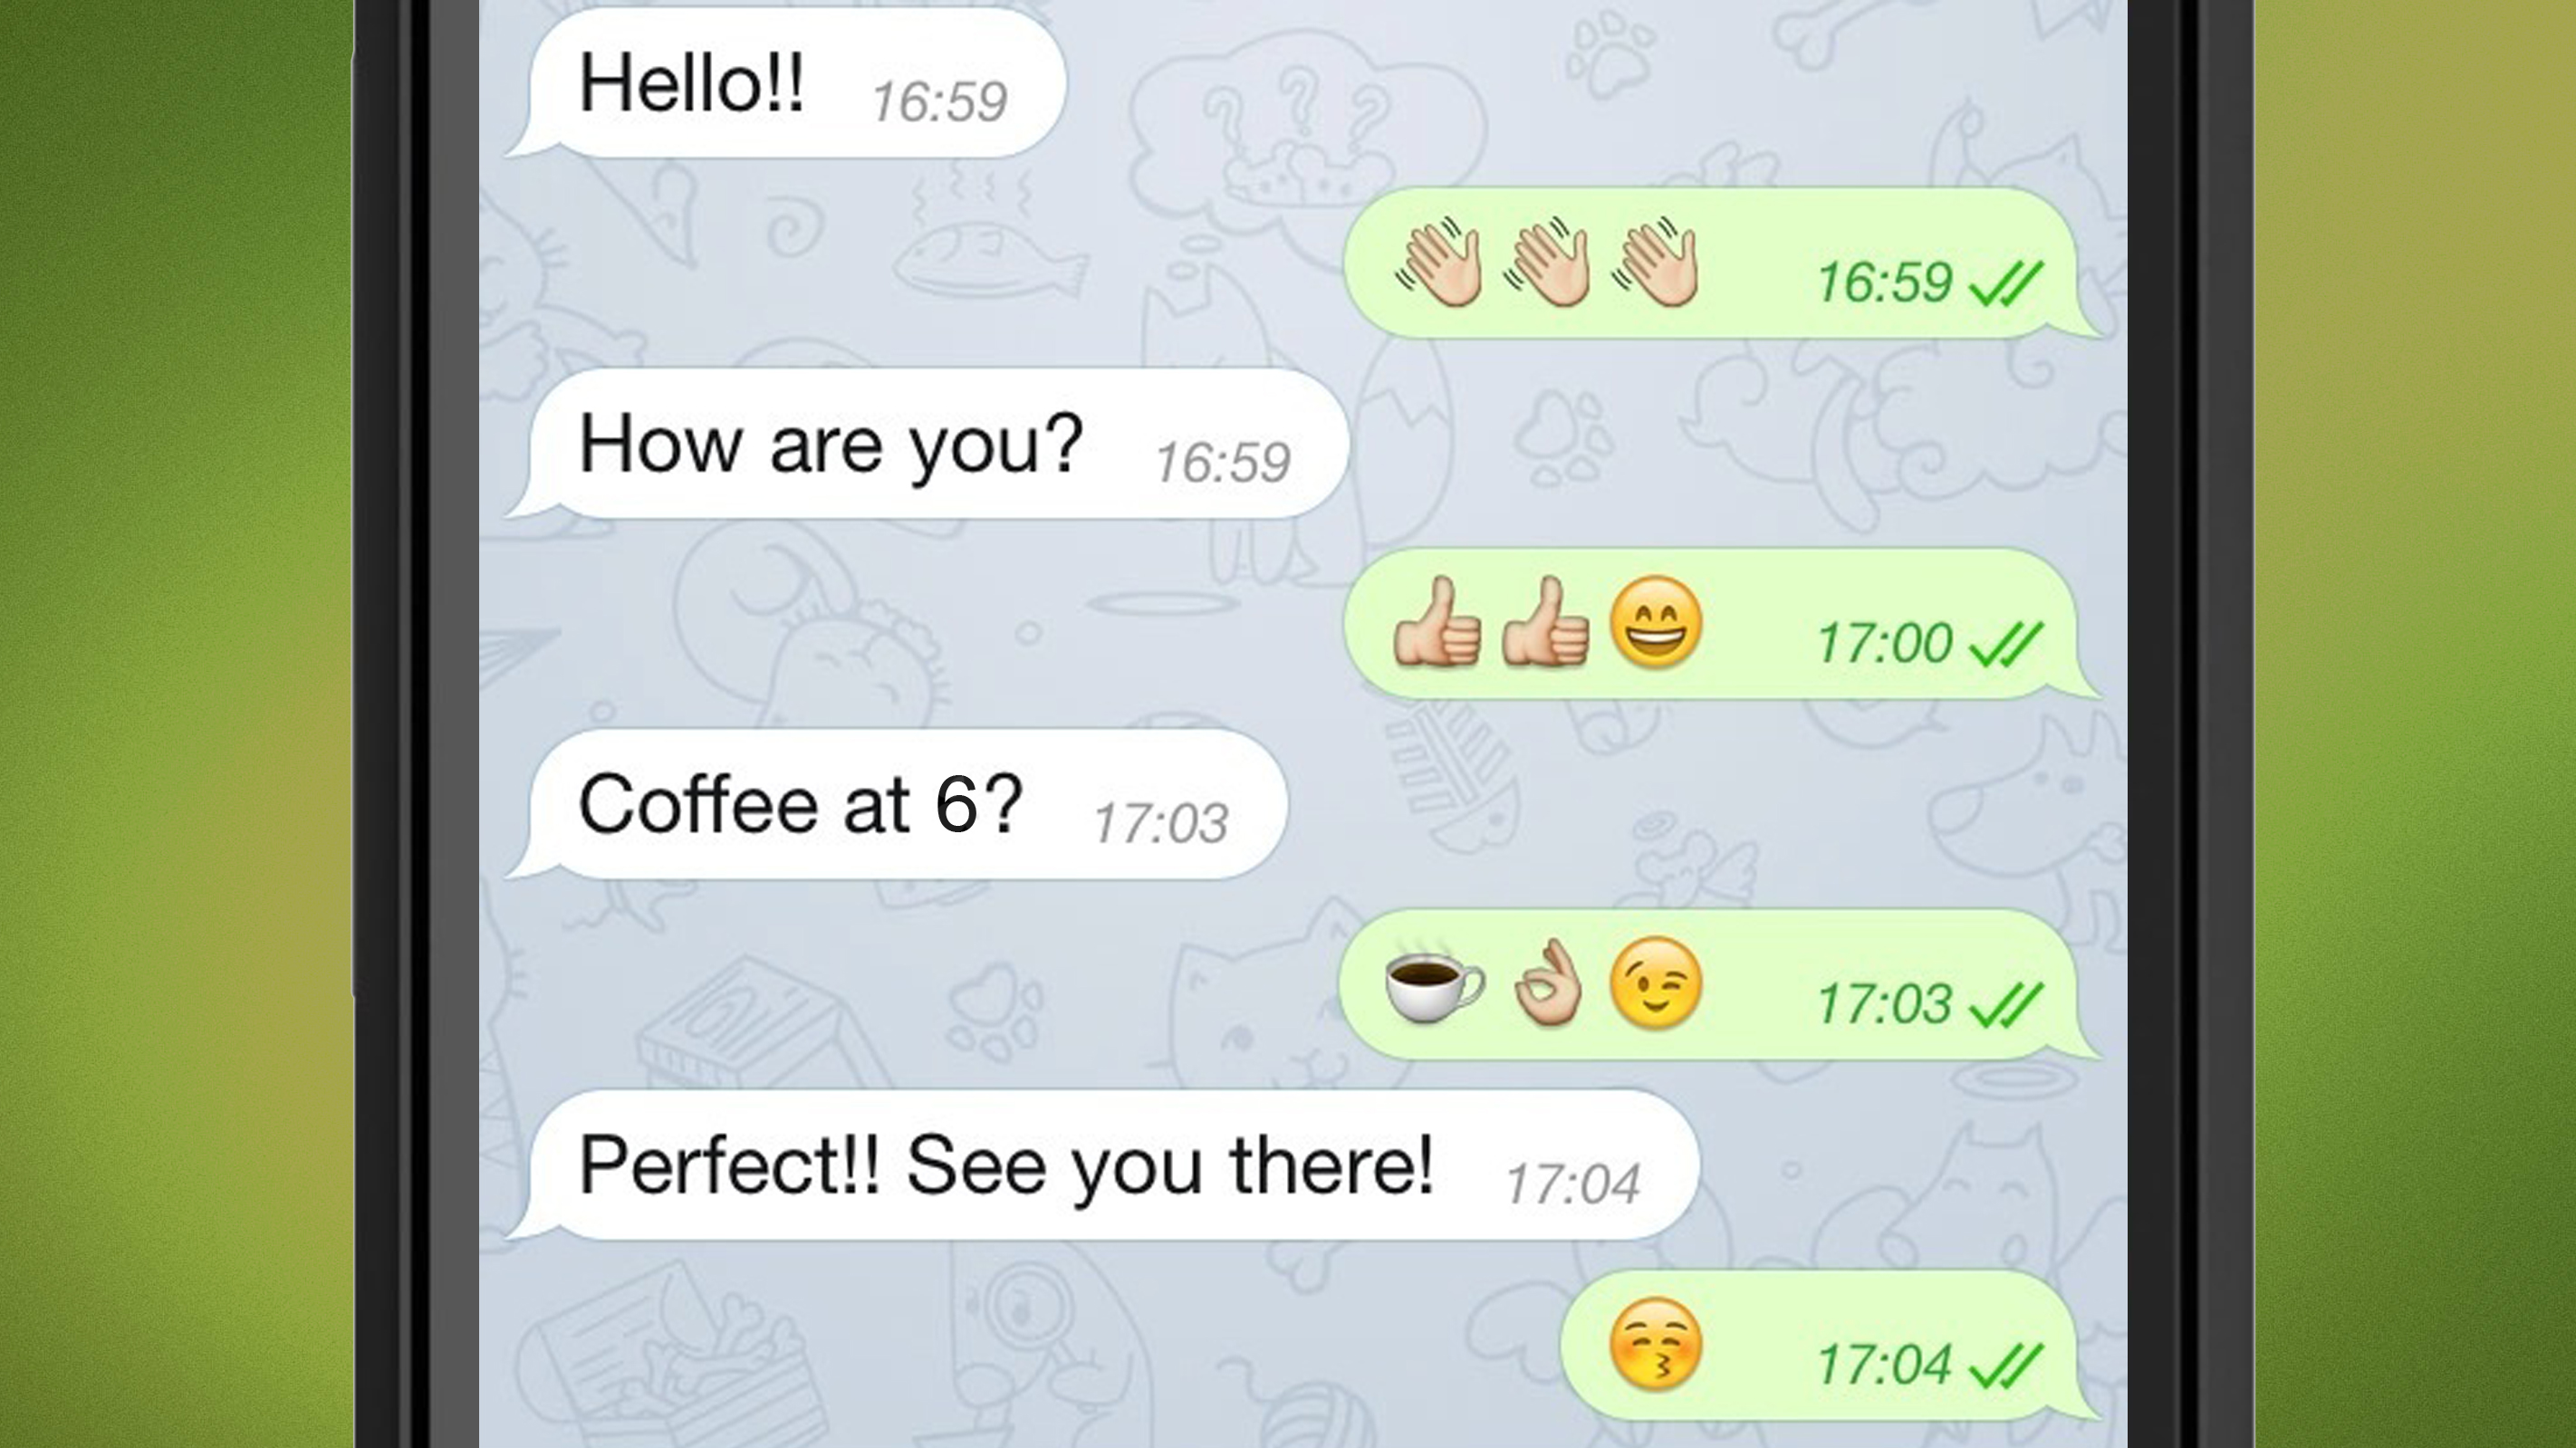 I Tried Texting On WhatsApp Only With Emojis For 24 Hours